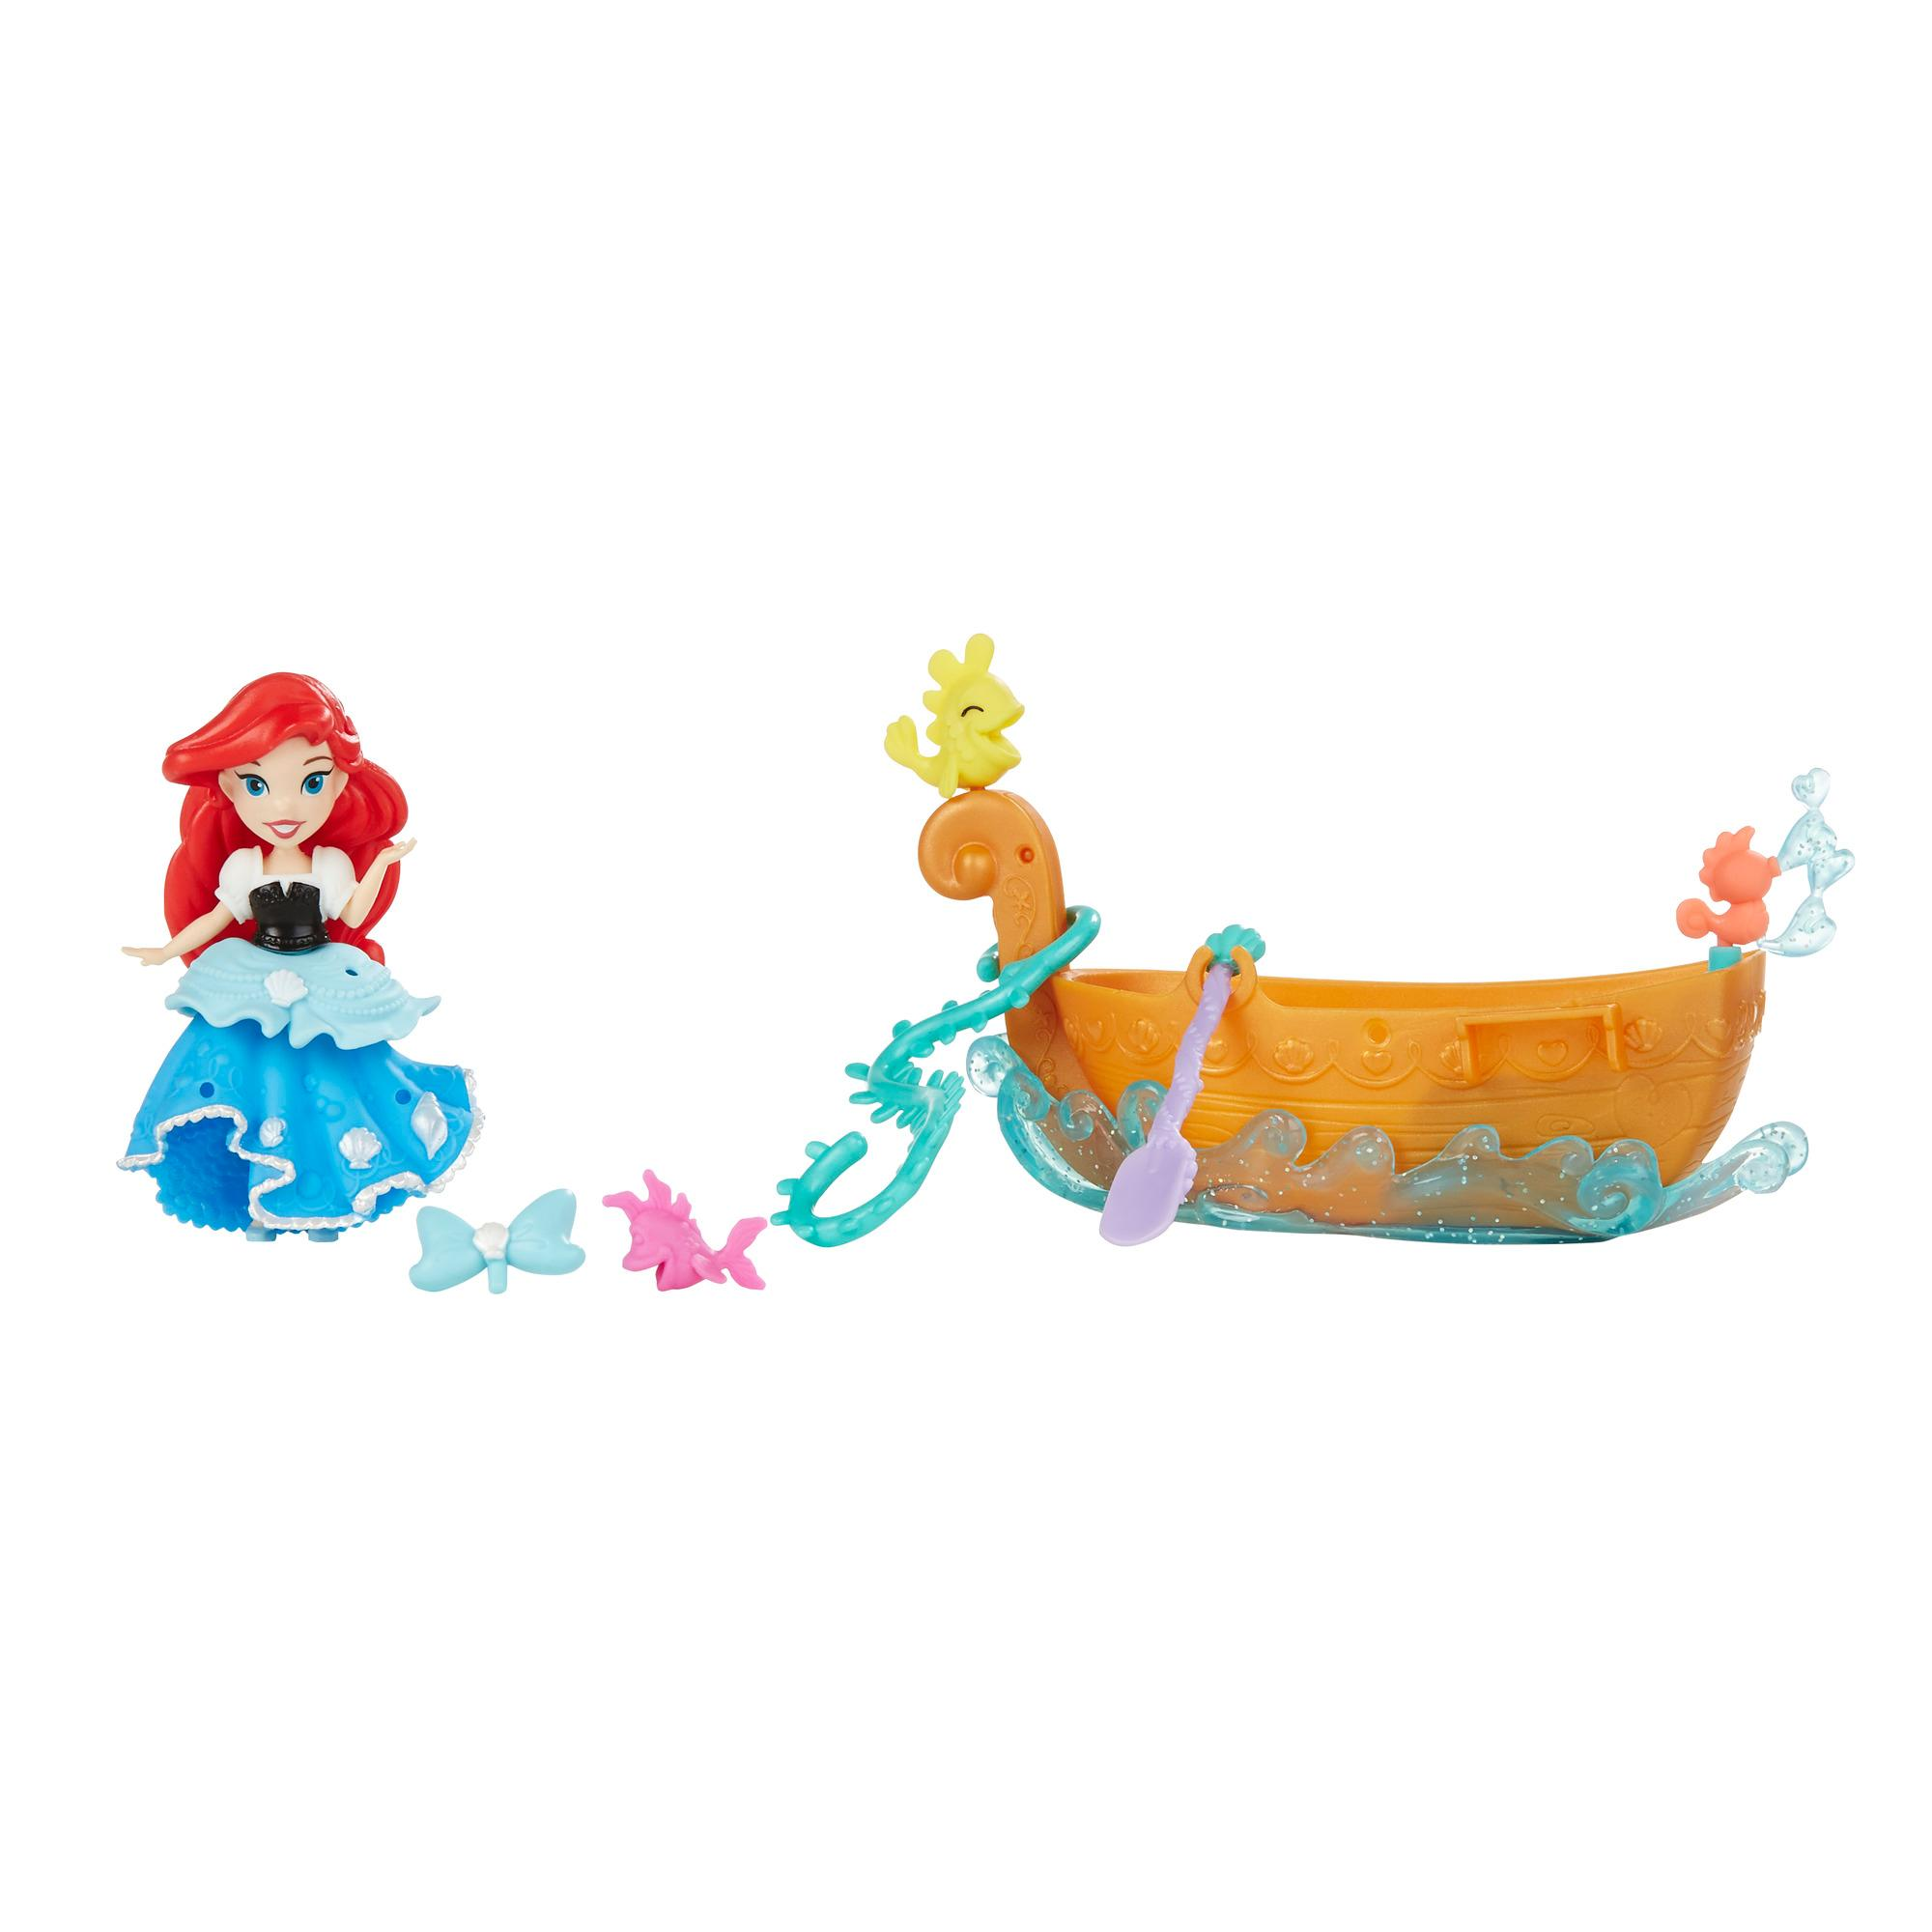 disney princess little kingdom - ariel si barcuta visurilor